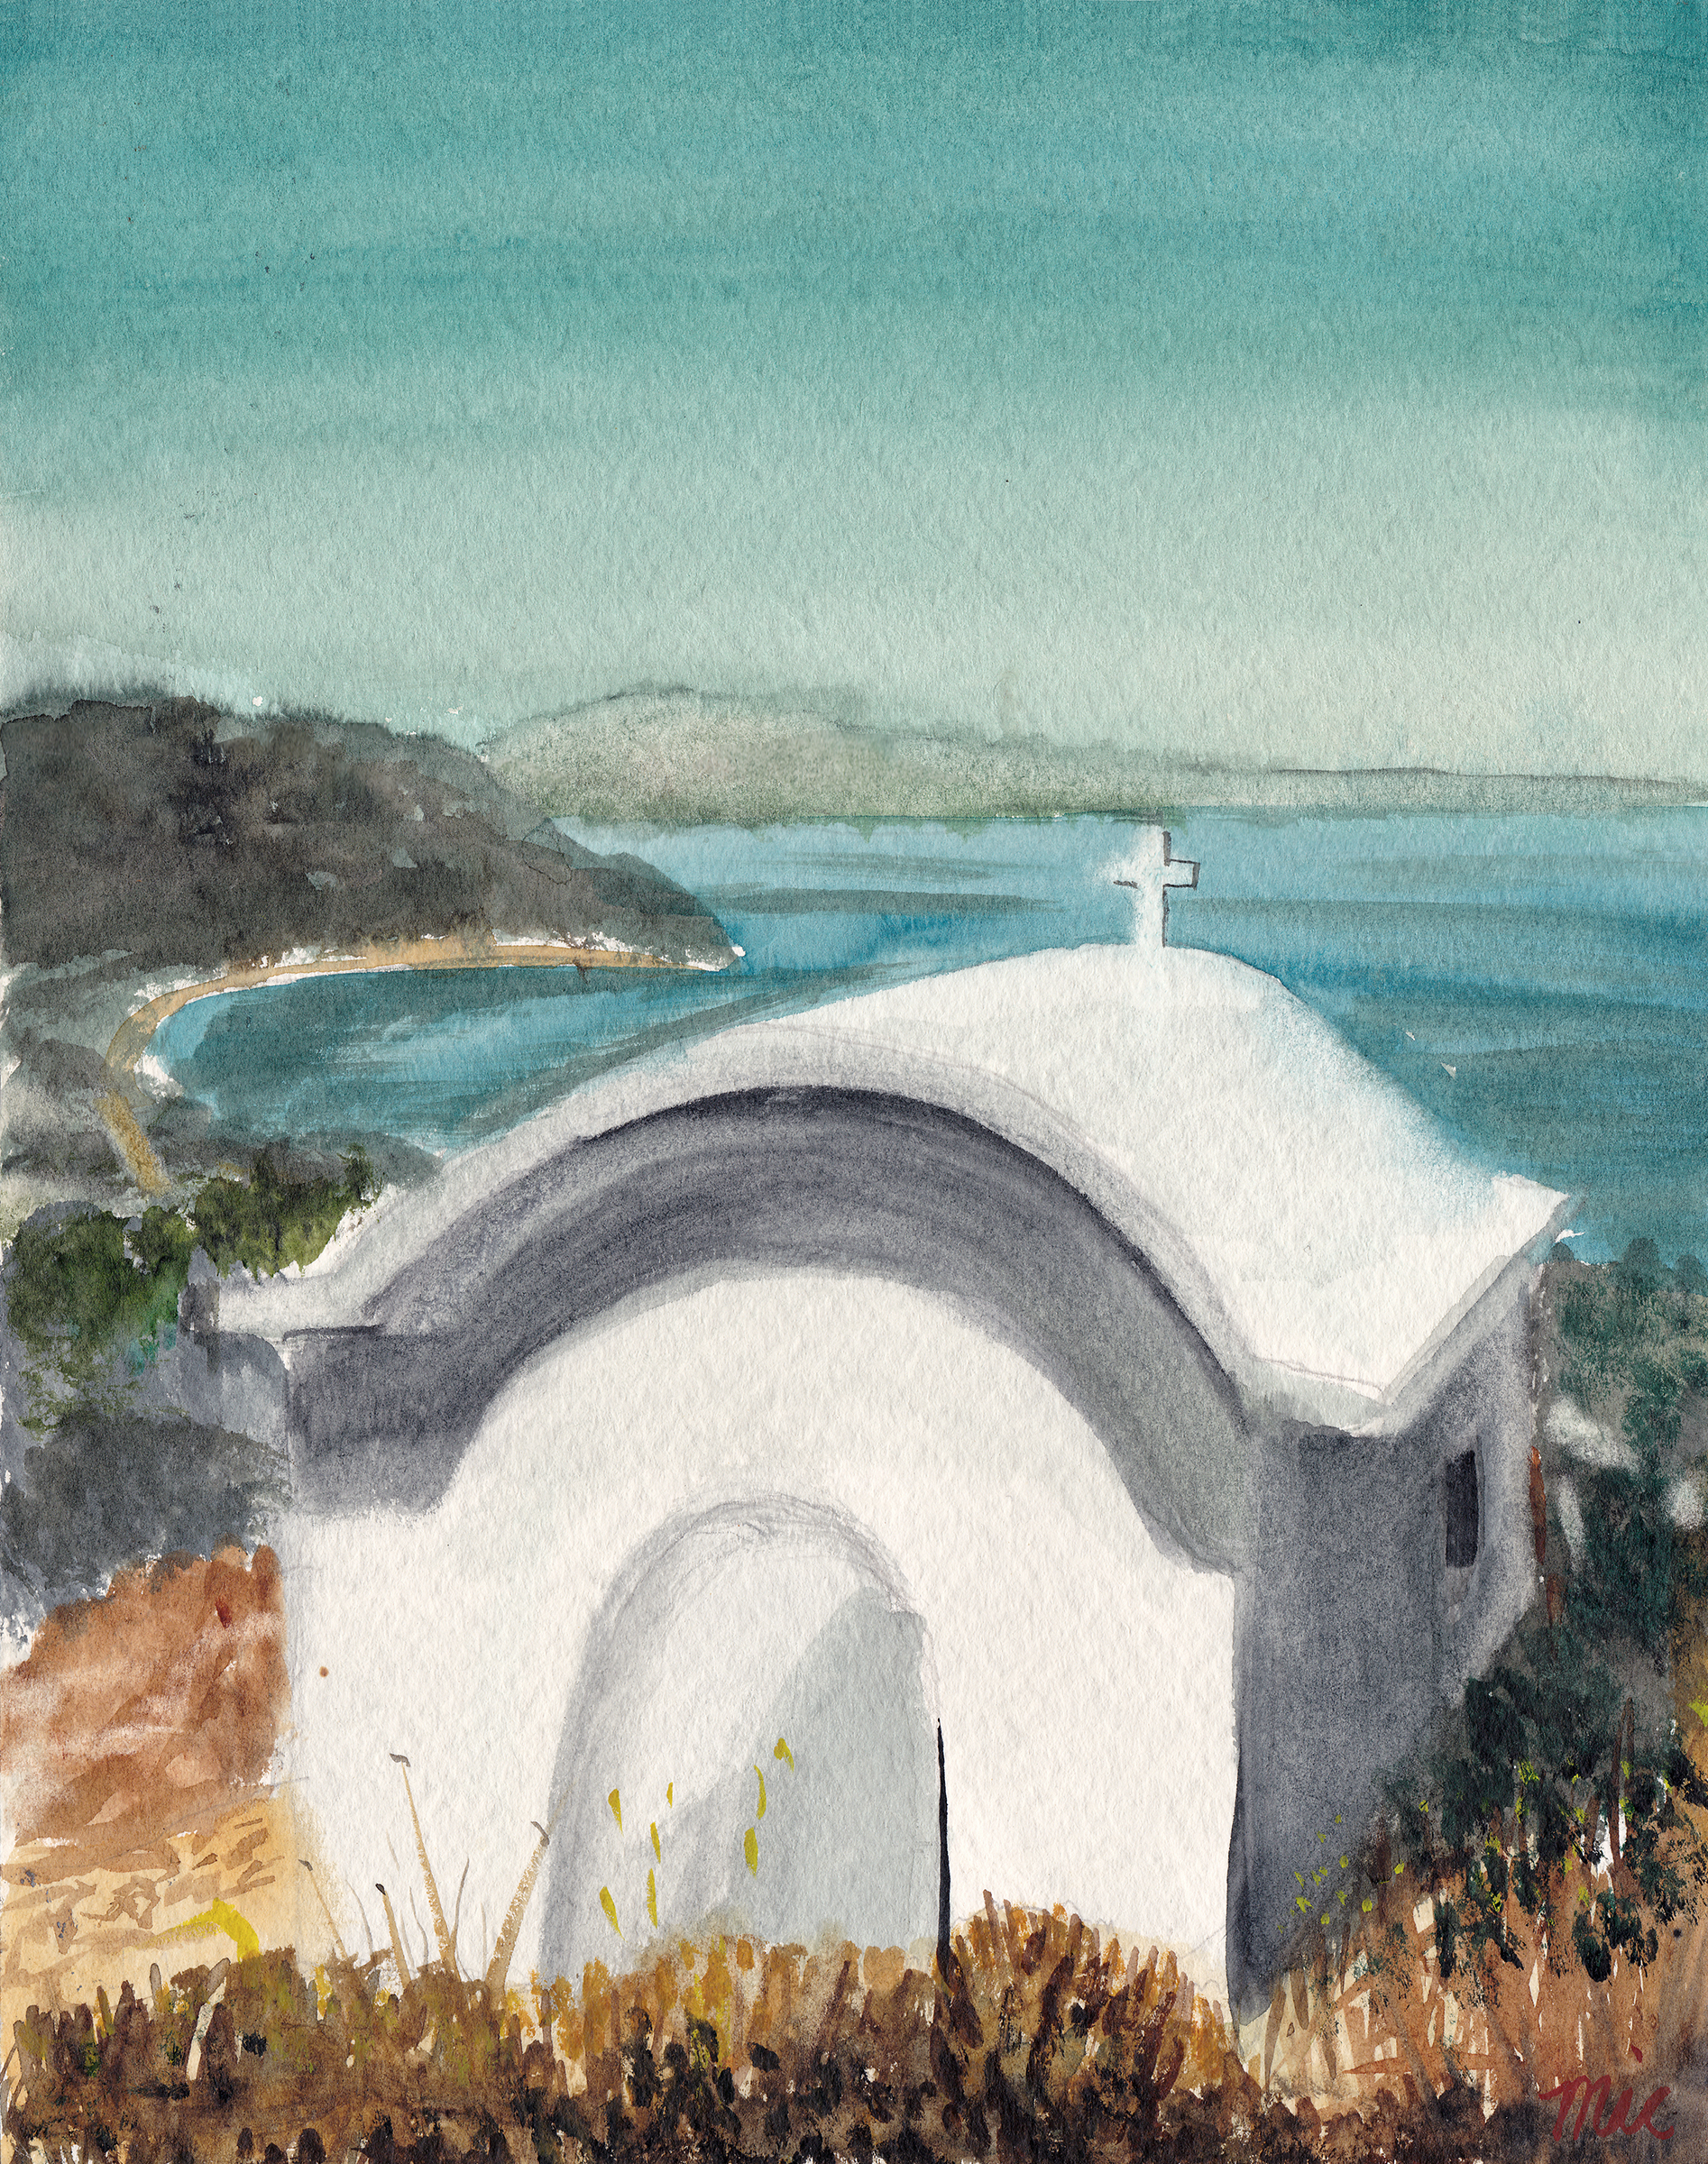 """The Little Chapel"" Alonnisos, Greece - Watercolor Private collection (unknown)Giclee Limited Edition and canvas prints are available. Please visit the prints gallery."